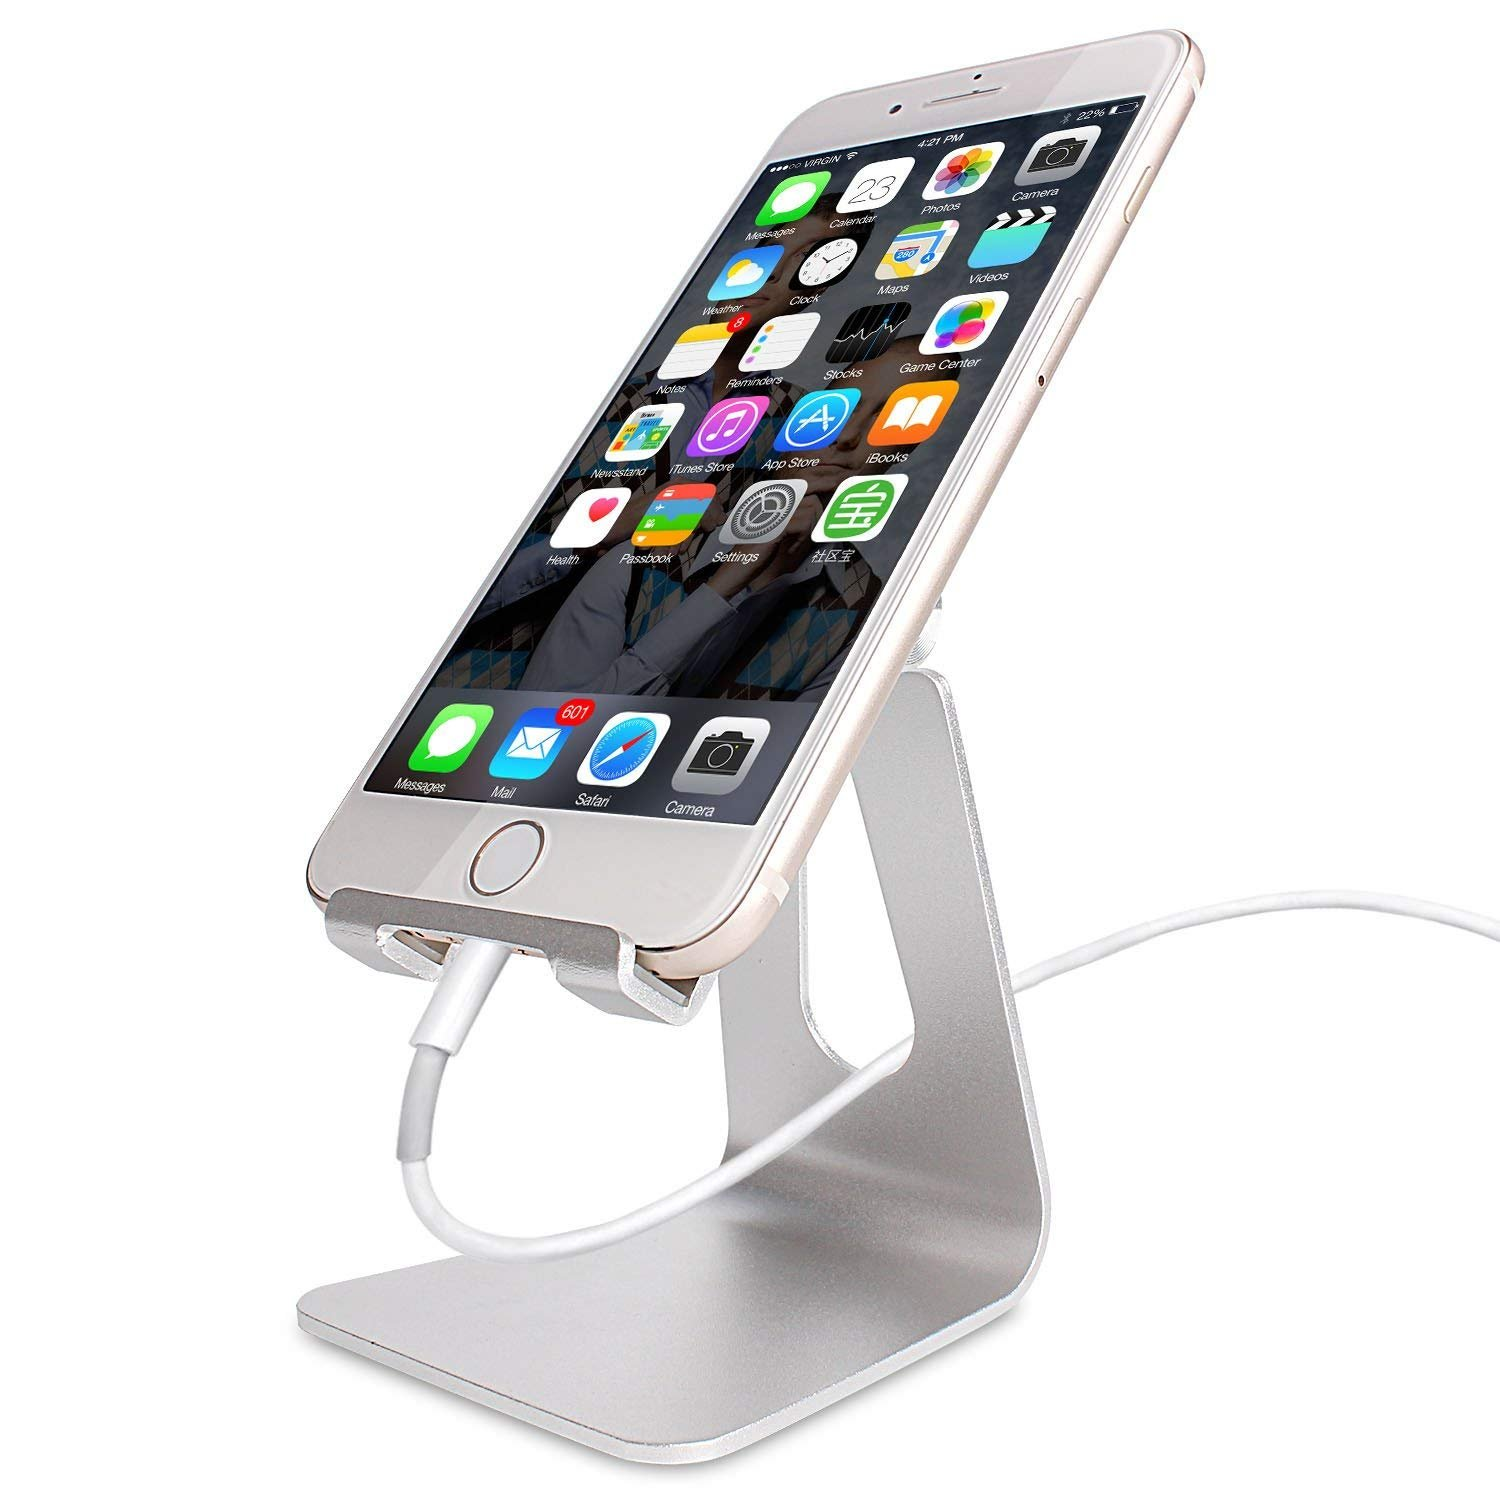 Dock Aluminum Desktop Stand Compatible with iPhone Xs Max Xr 8 7 6 6s Plus 5s Charging Cradle Accessories Desk,All Smart Phone-Black CreaDream Phone Stand Adjustable Cell Phone Stand Holder